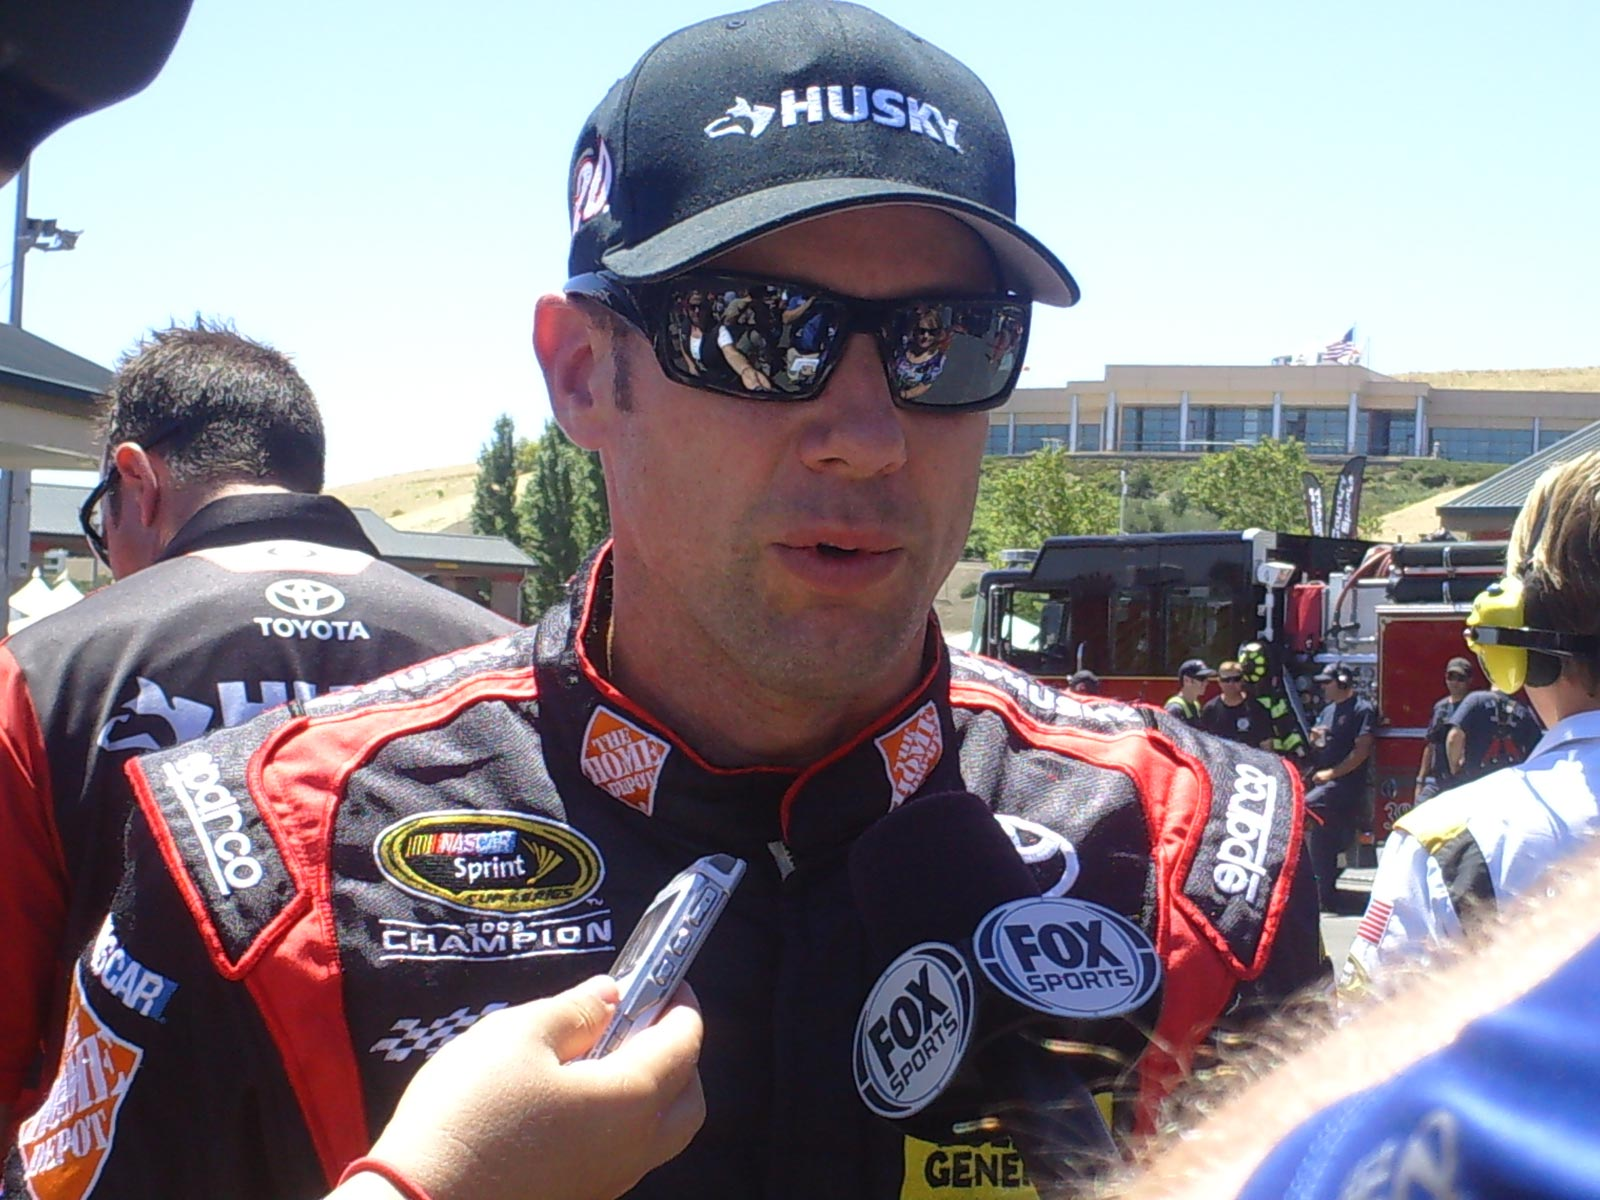 sonoma-saturday-matt-kenseth